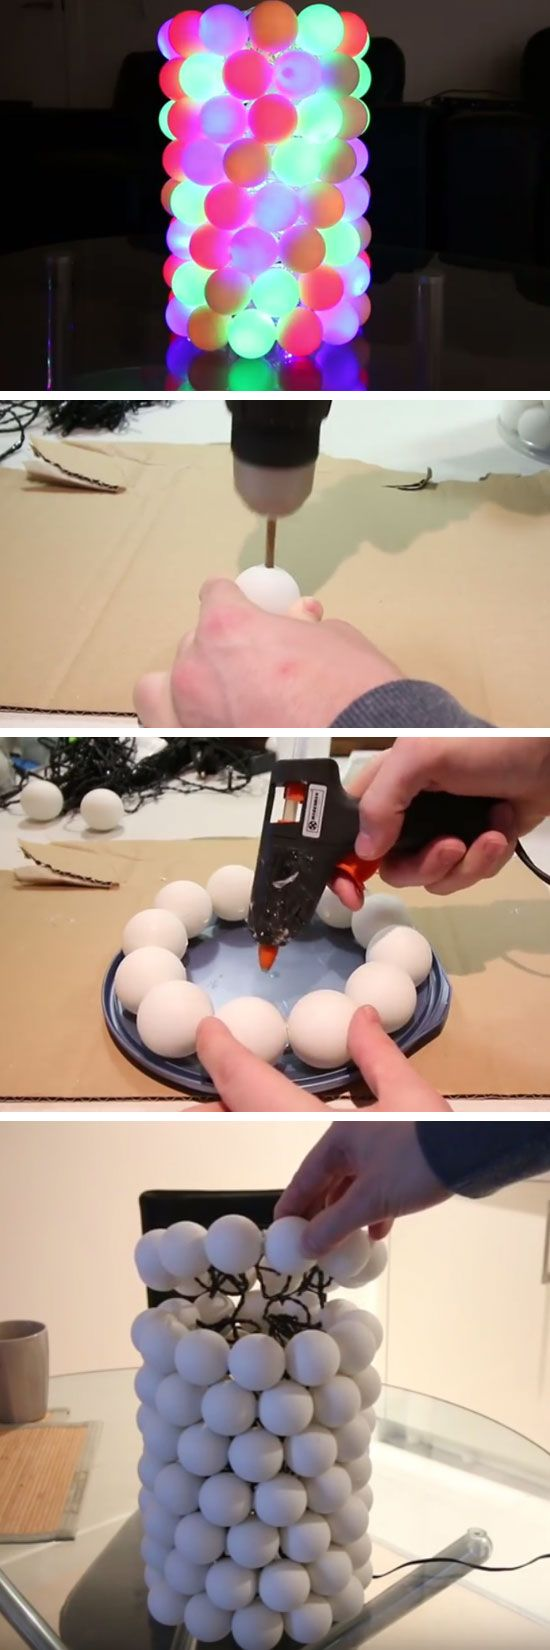 Illuminated Ping Pong Ball Lamp | Easy to Make Christmas Decorations for the Home